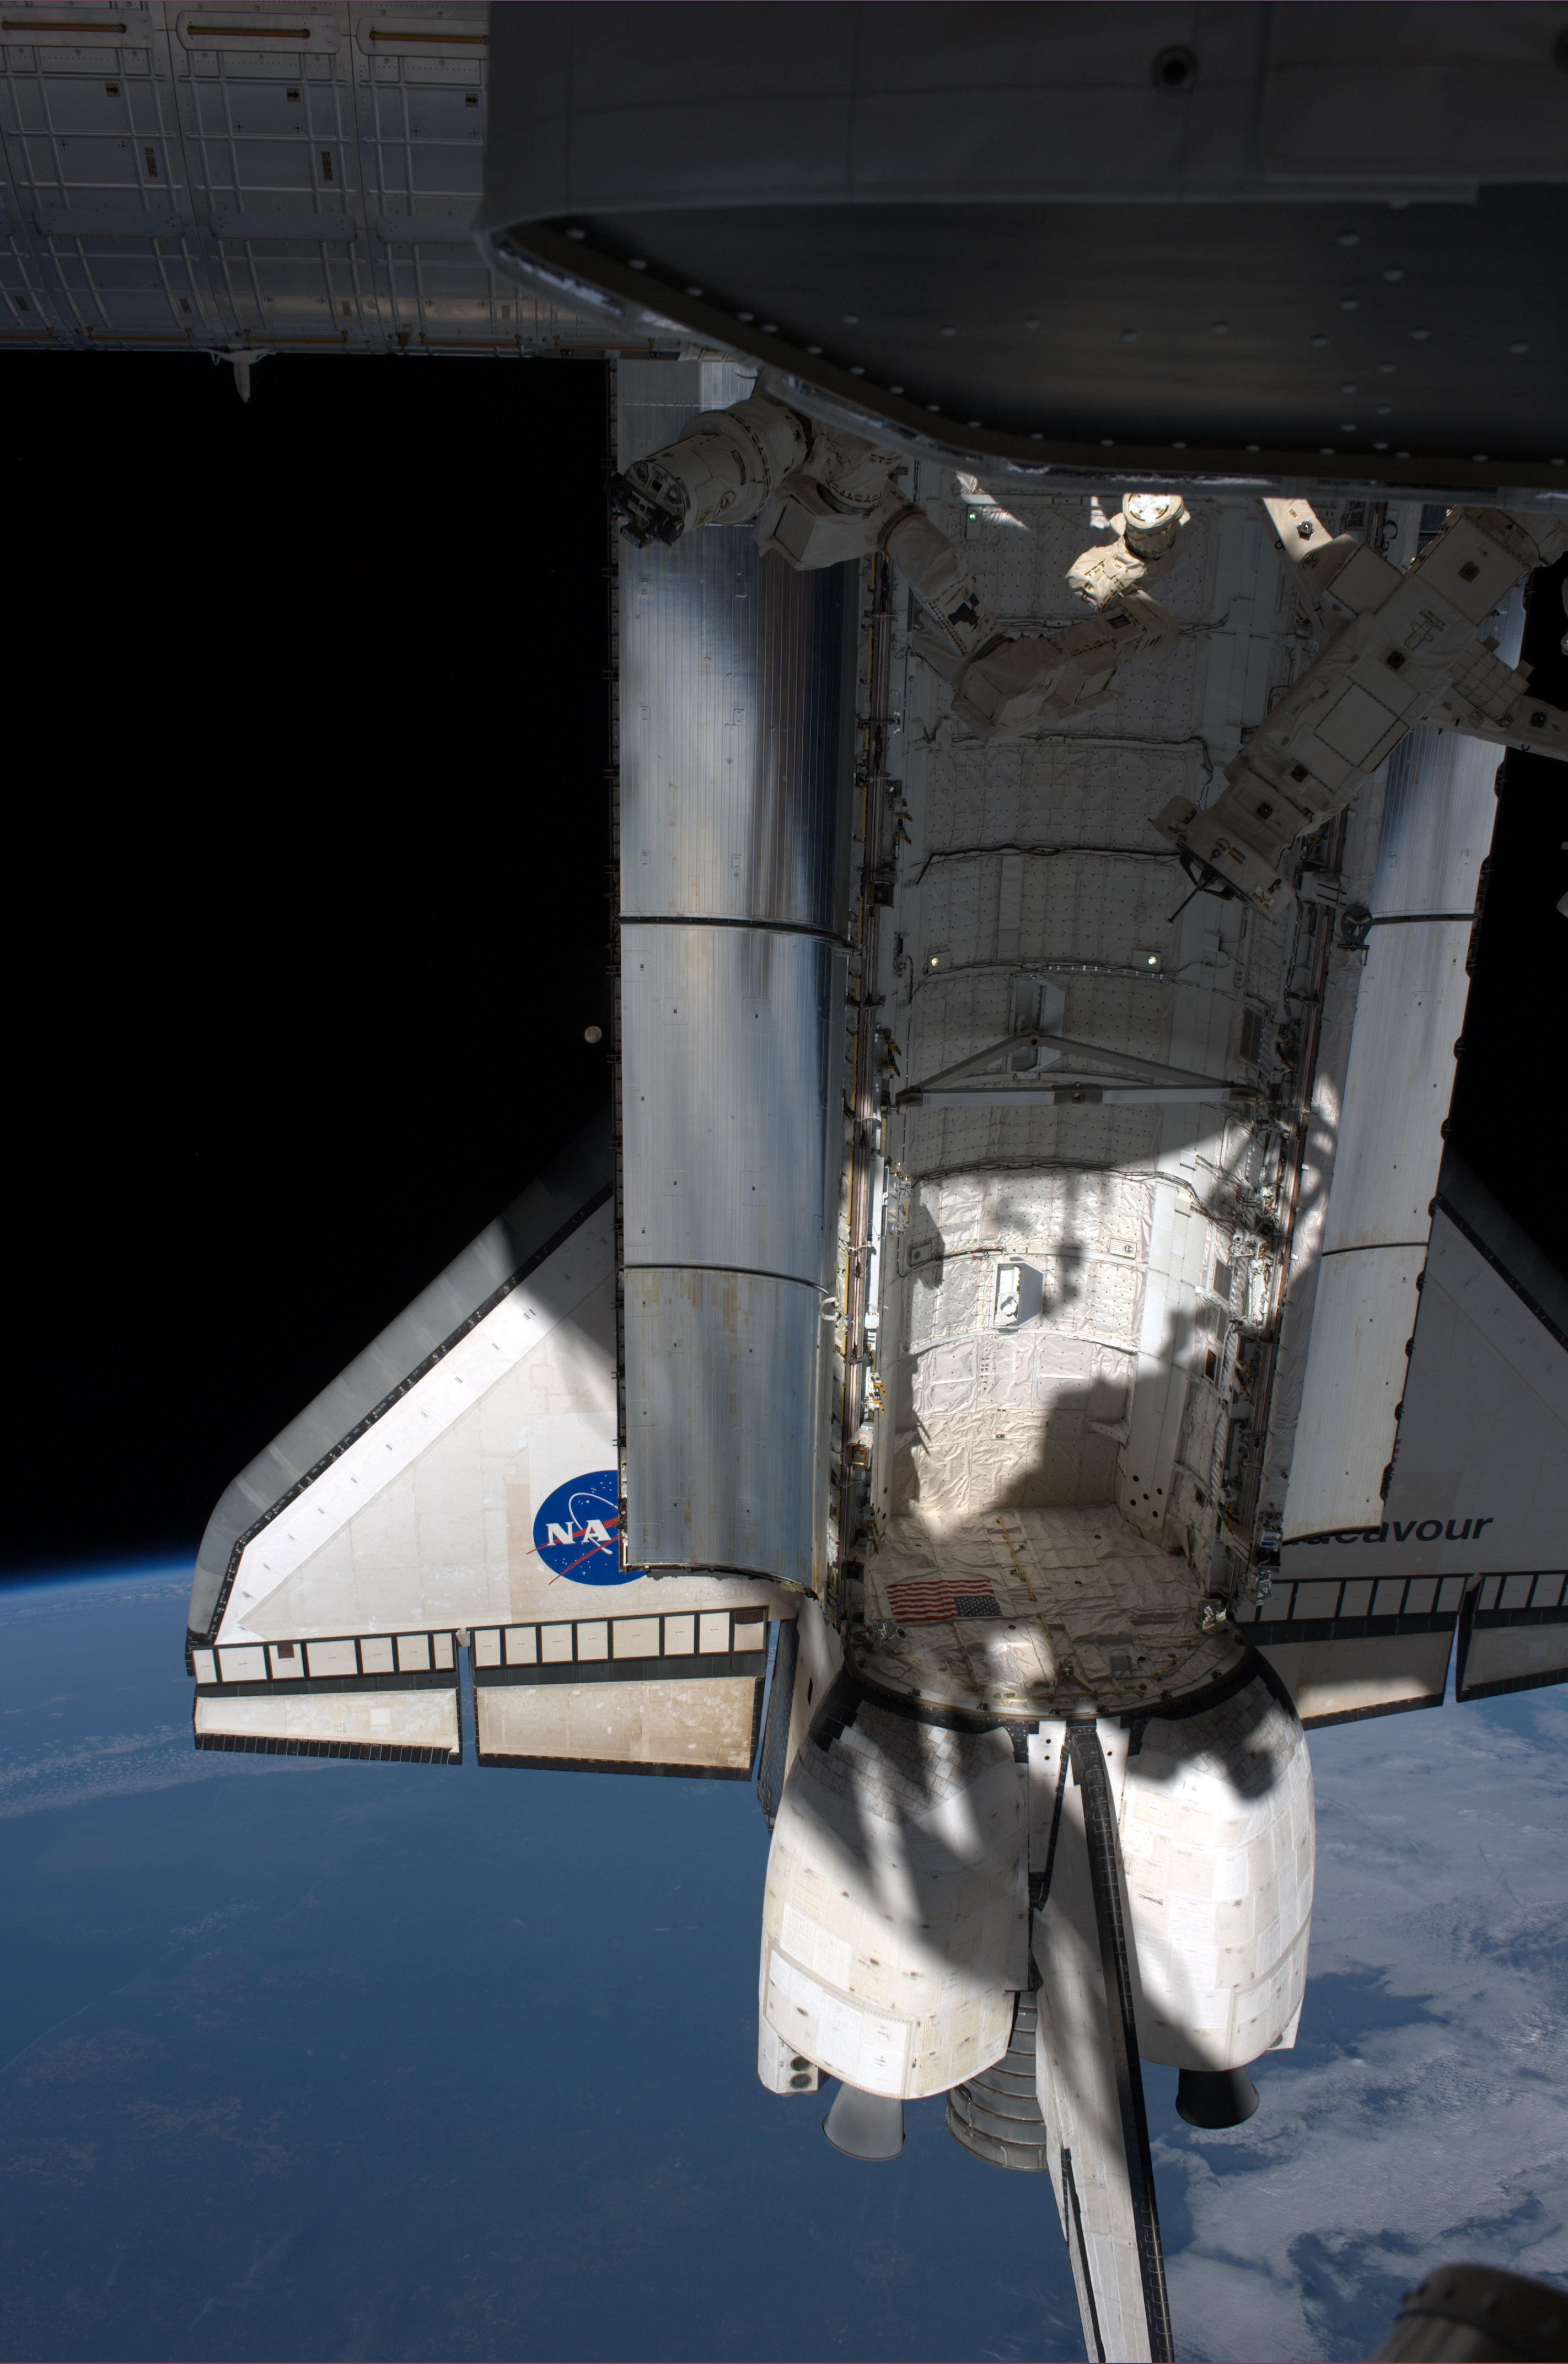 Na nasa new space shuttle design - Endeavour At The International Space Station